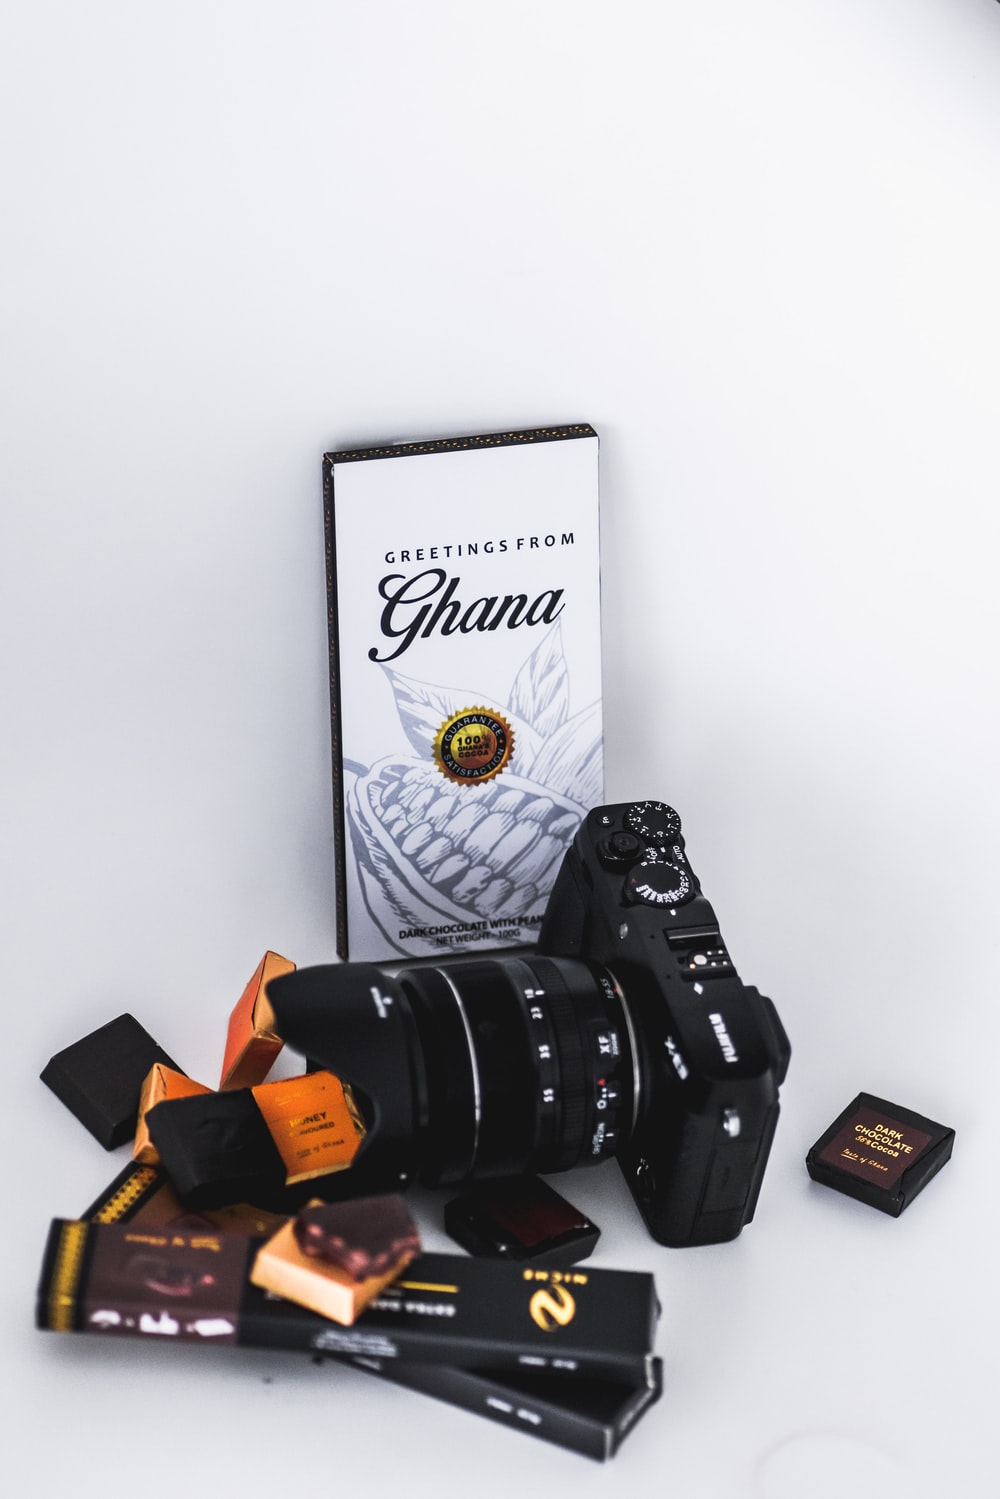 black DSLR camera near chocolate packets